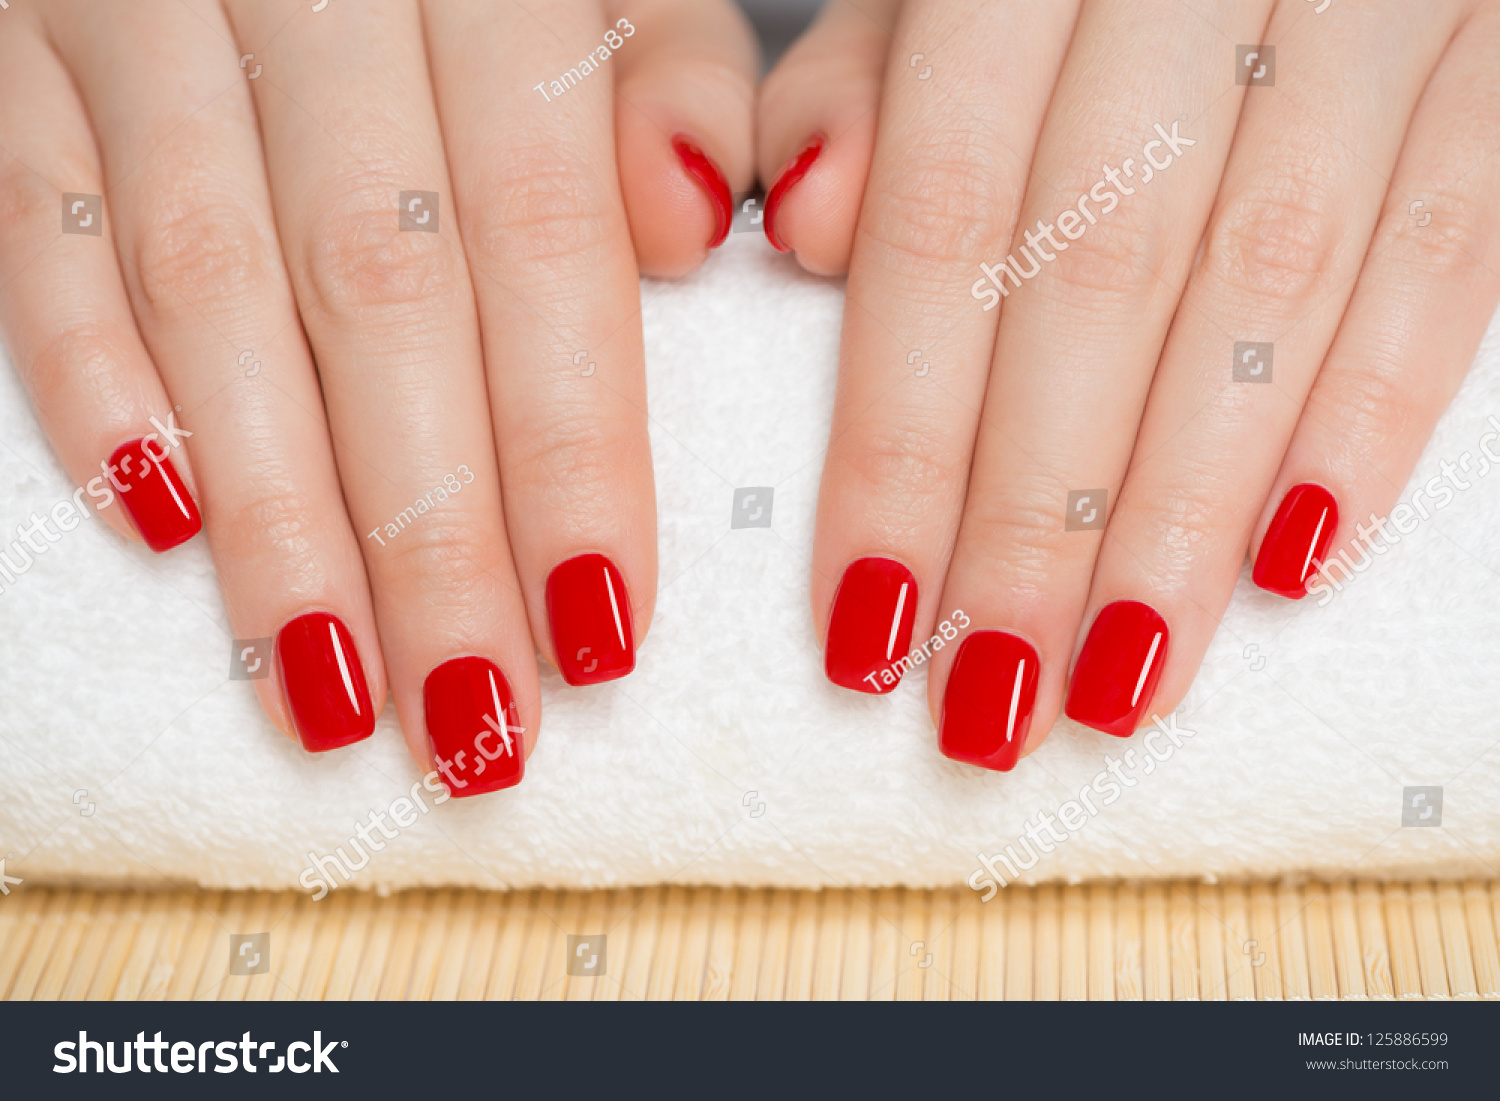 Manicure Nice Manicured Woman Nails Red Stock Photo (Download Now ...